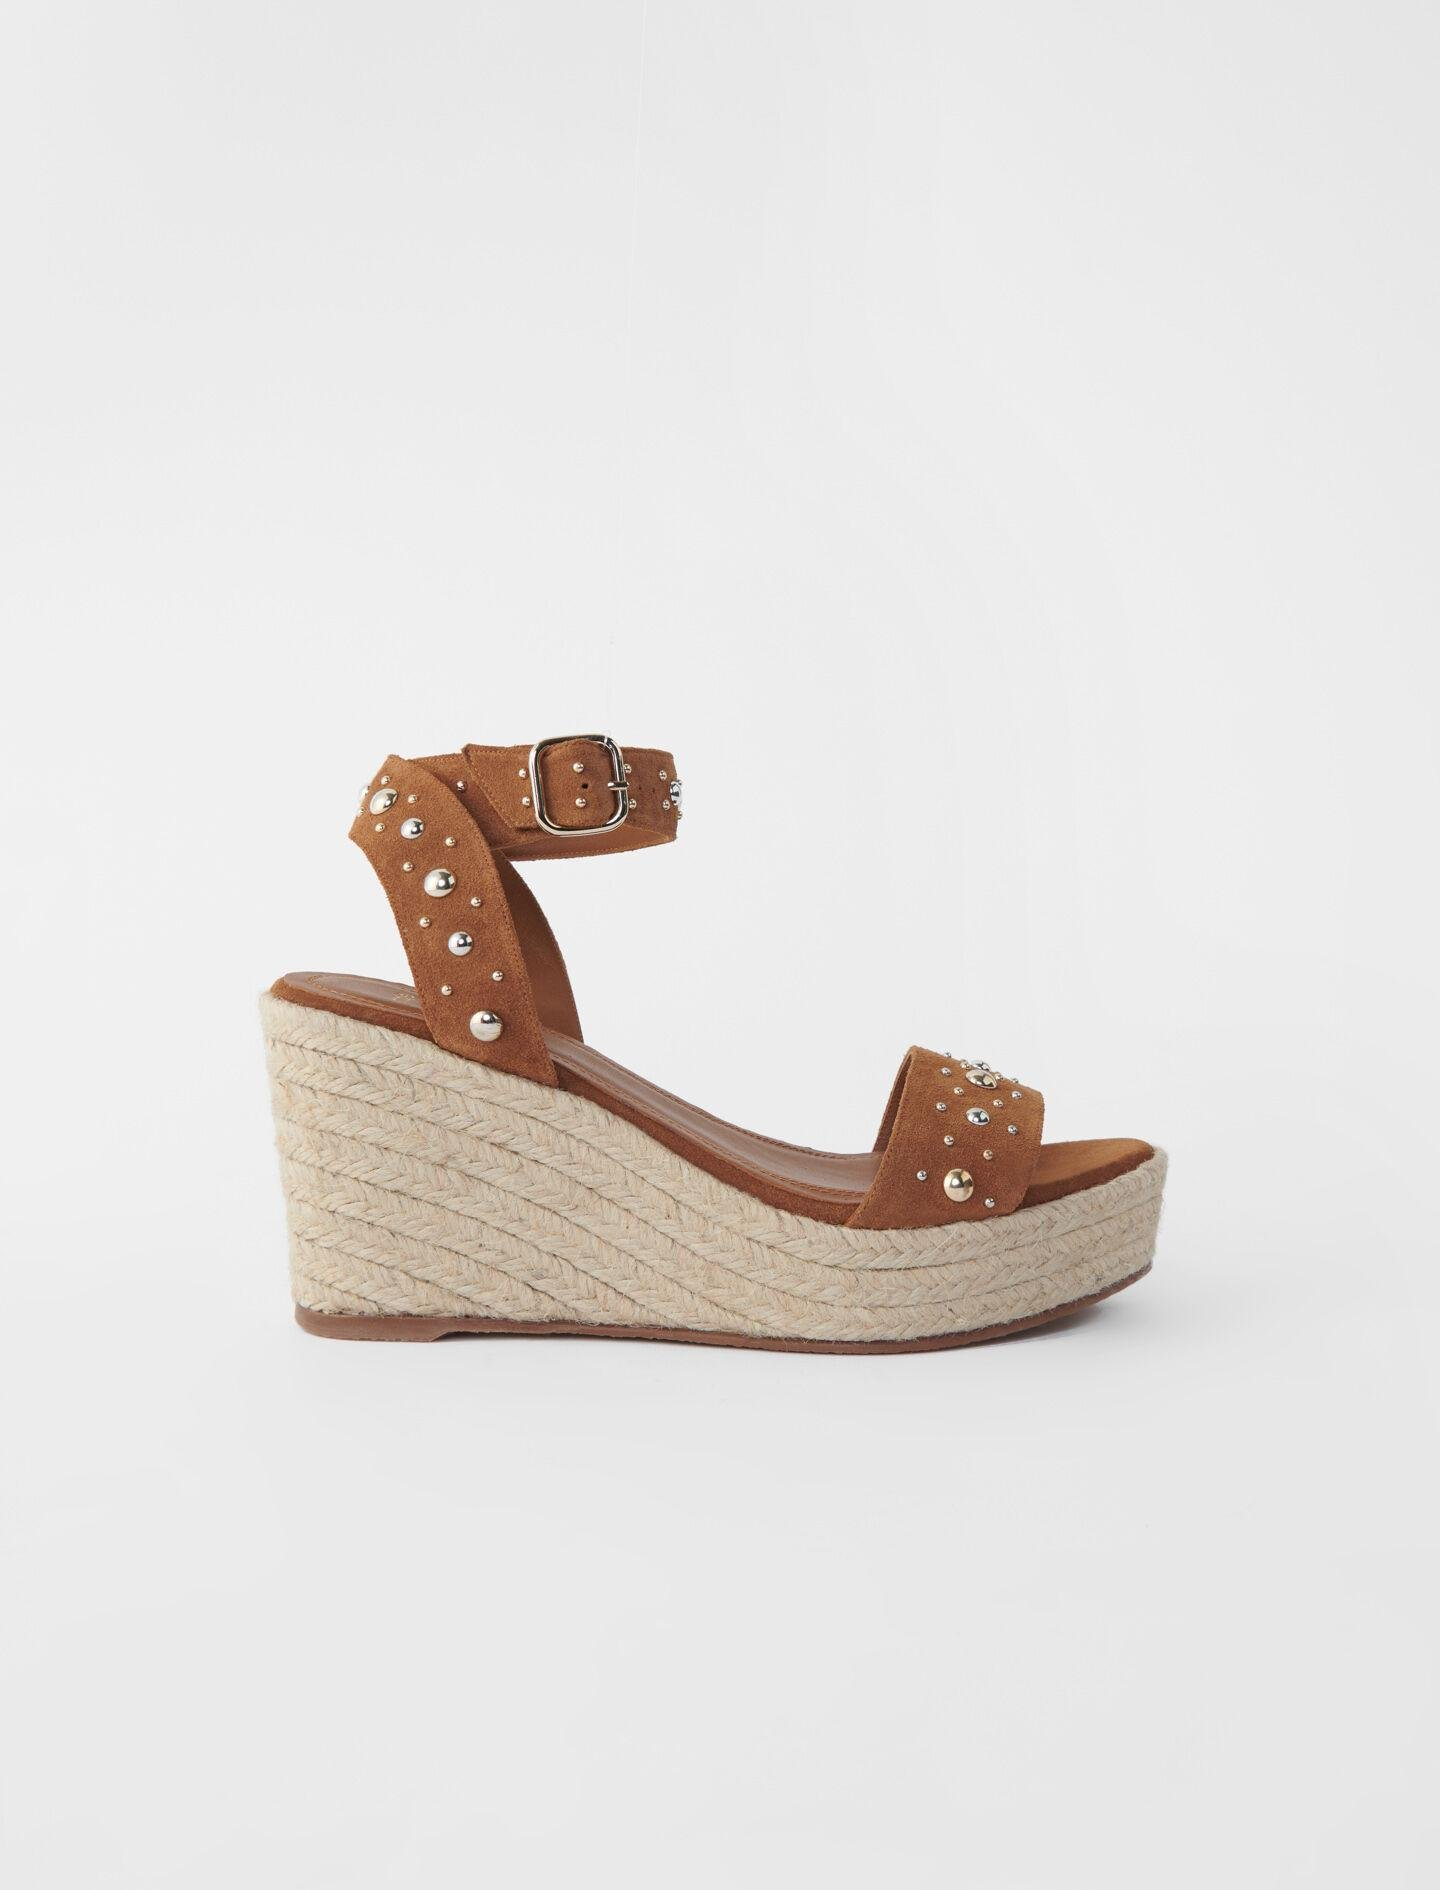 WEDGE SANDALS WITH SUEDE STRAPS